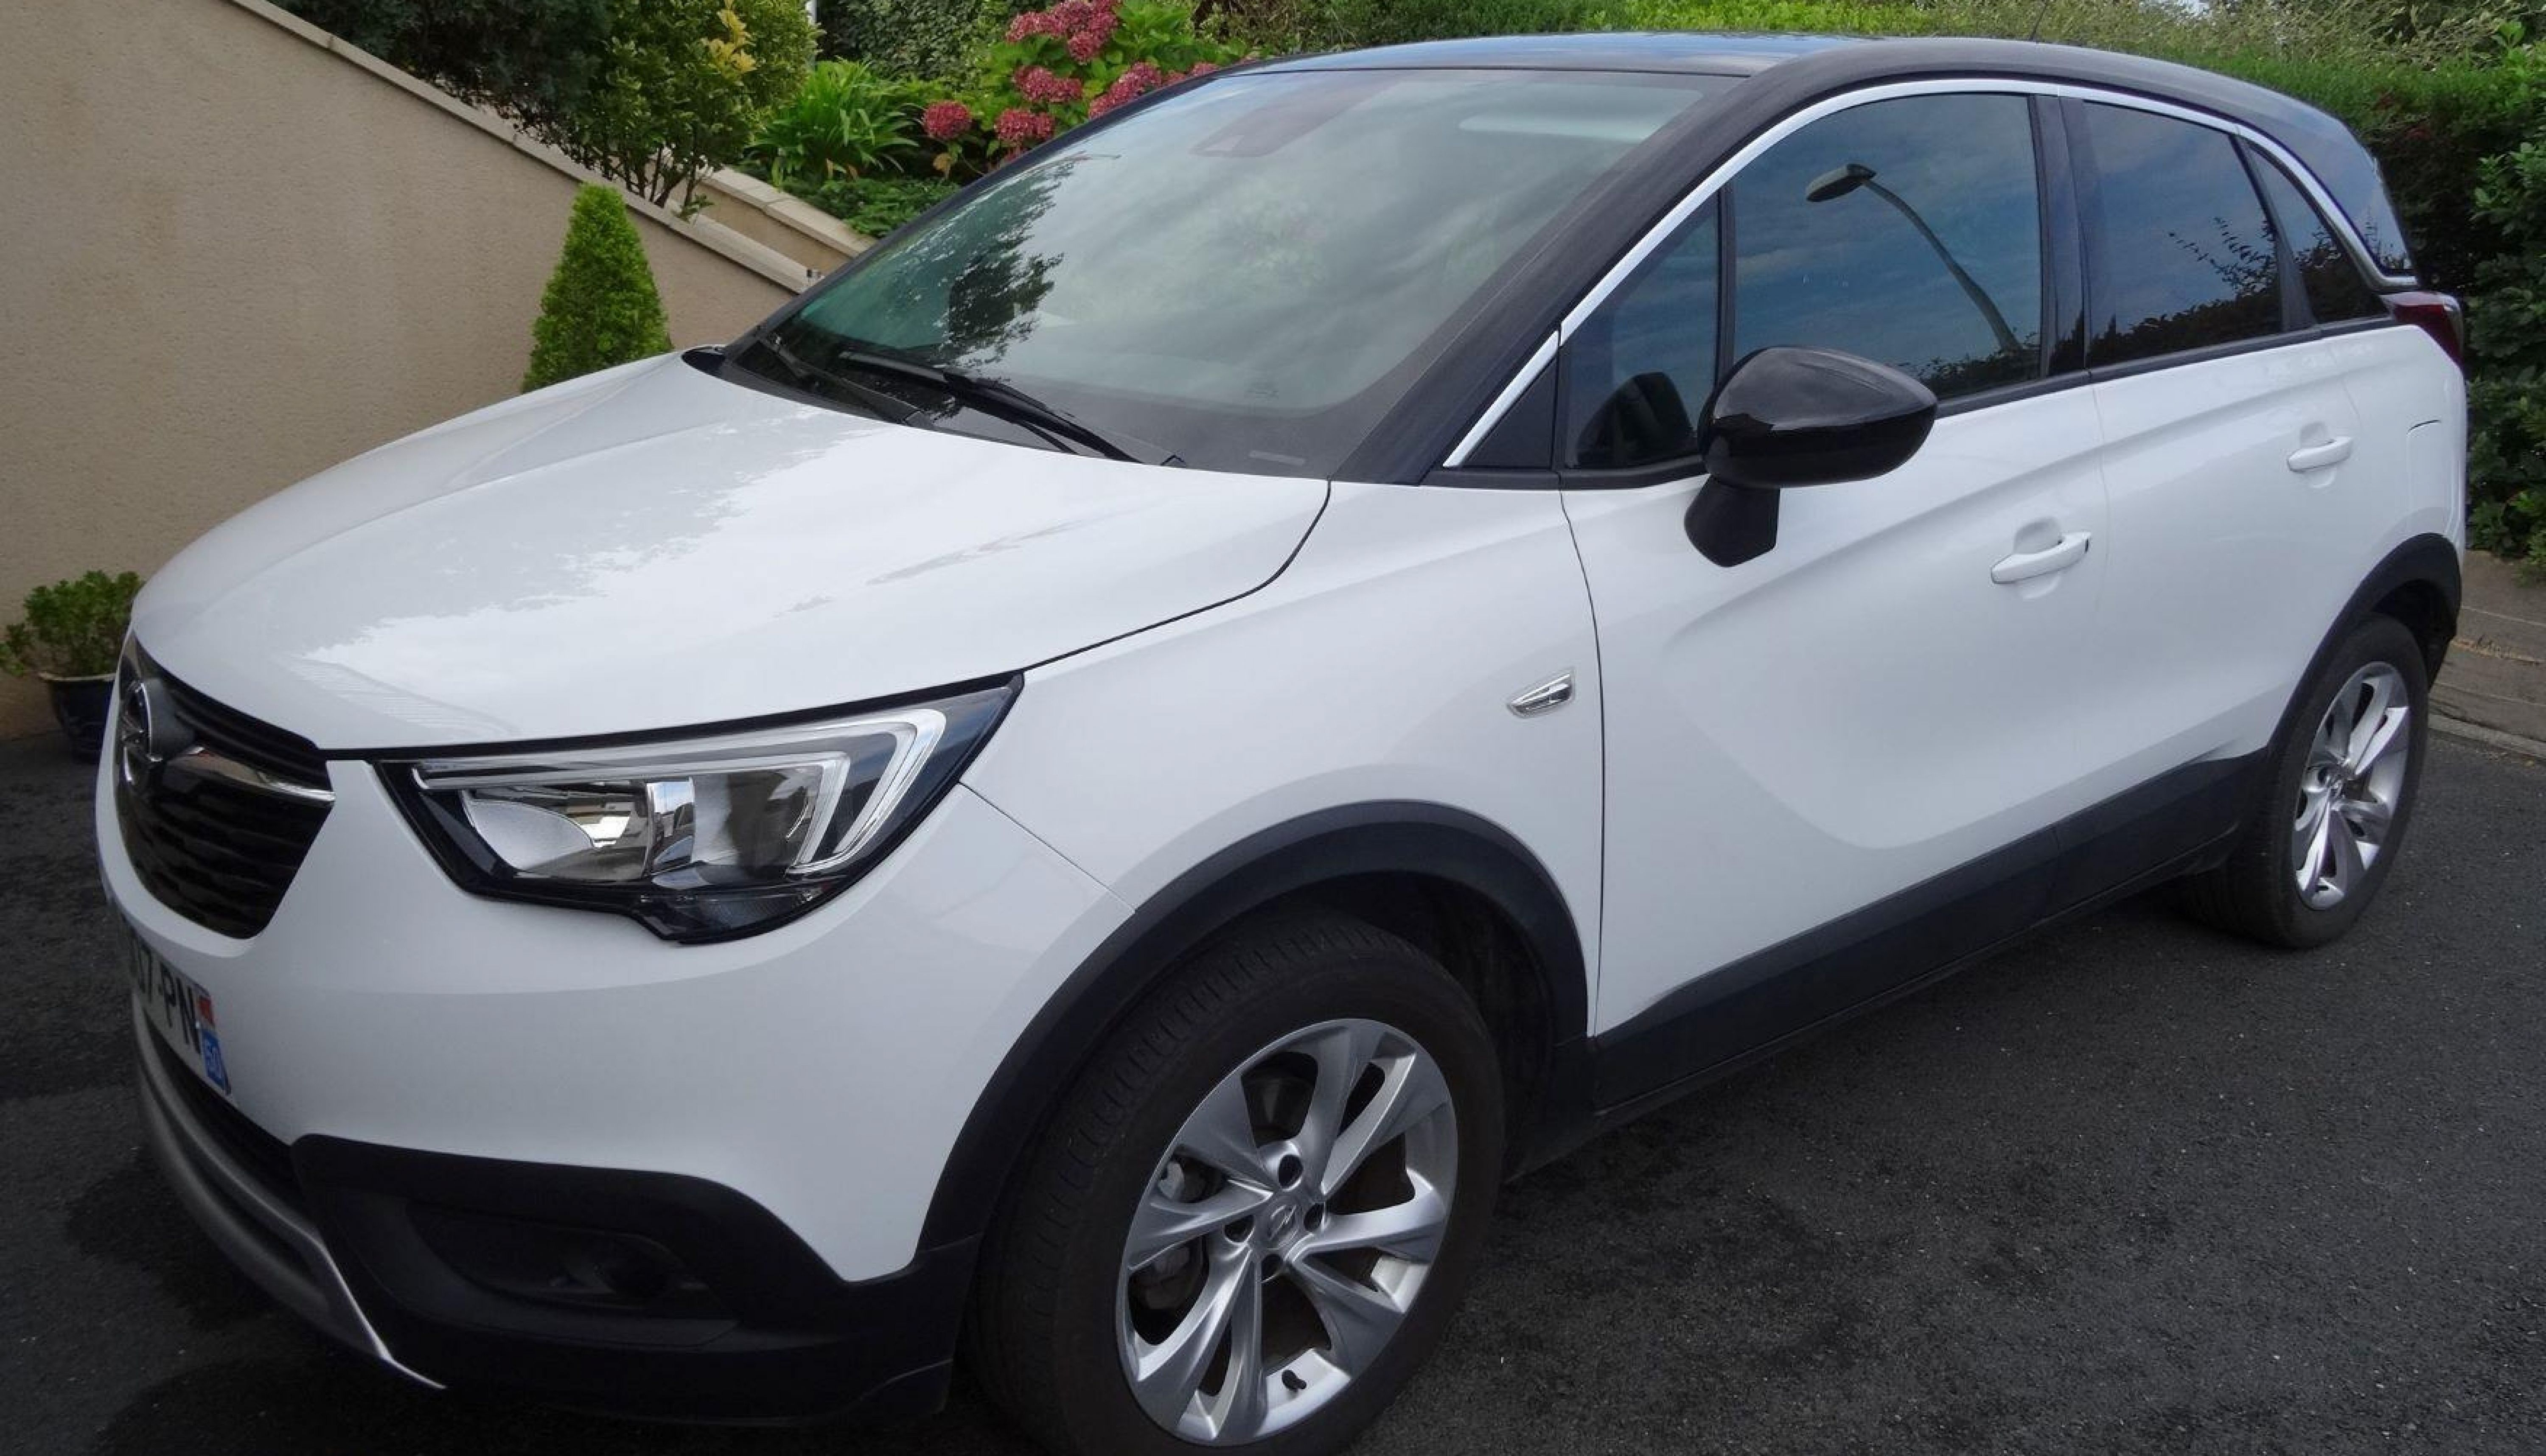 Crossland x innovation 1.2 turbo - Photo 3